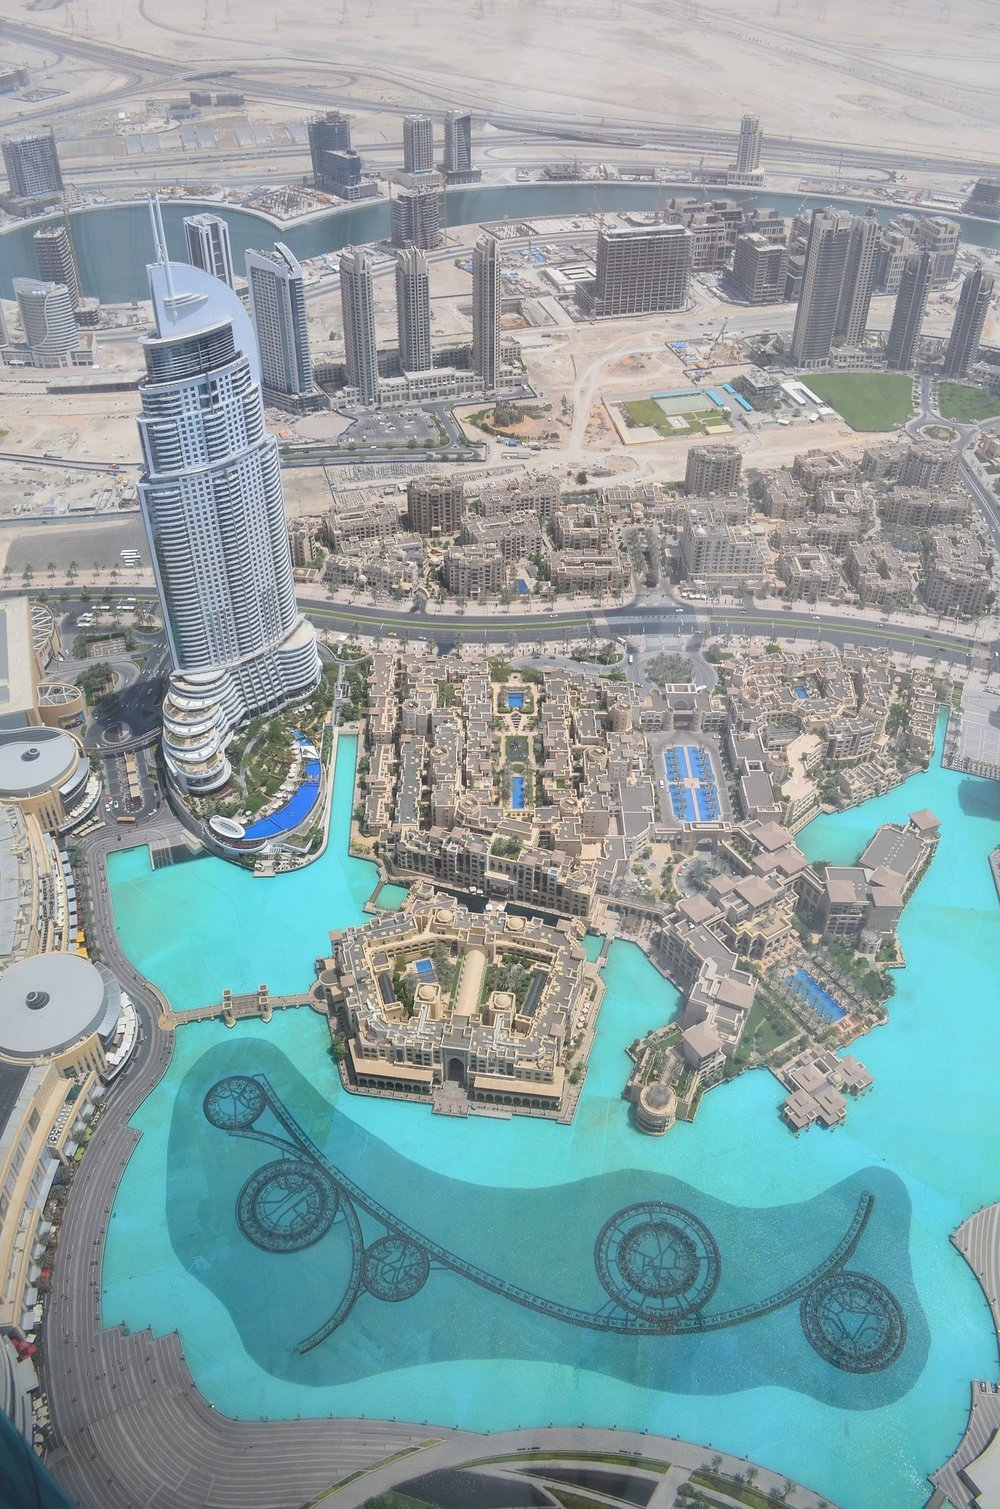 View from the top of the Burj Khalifa building